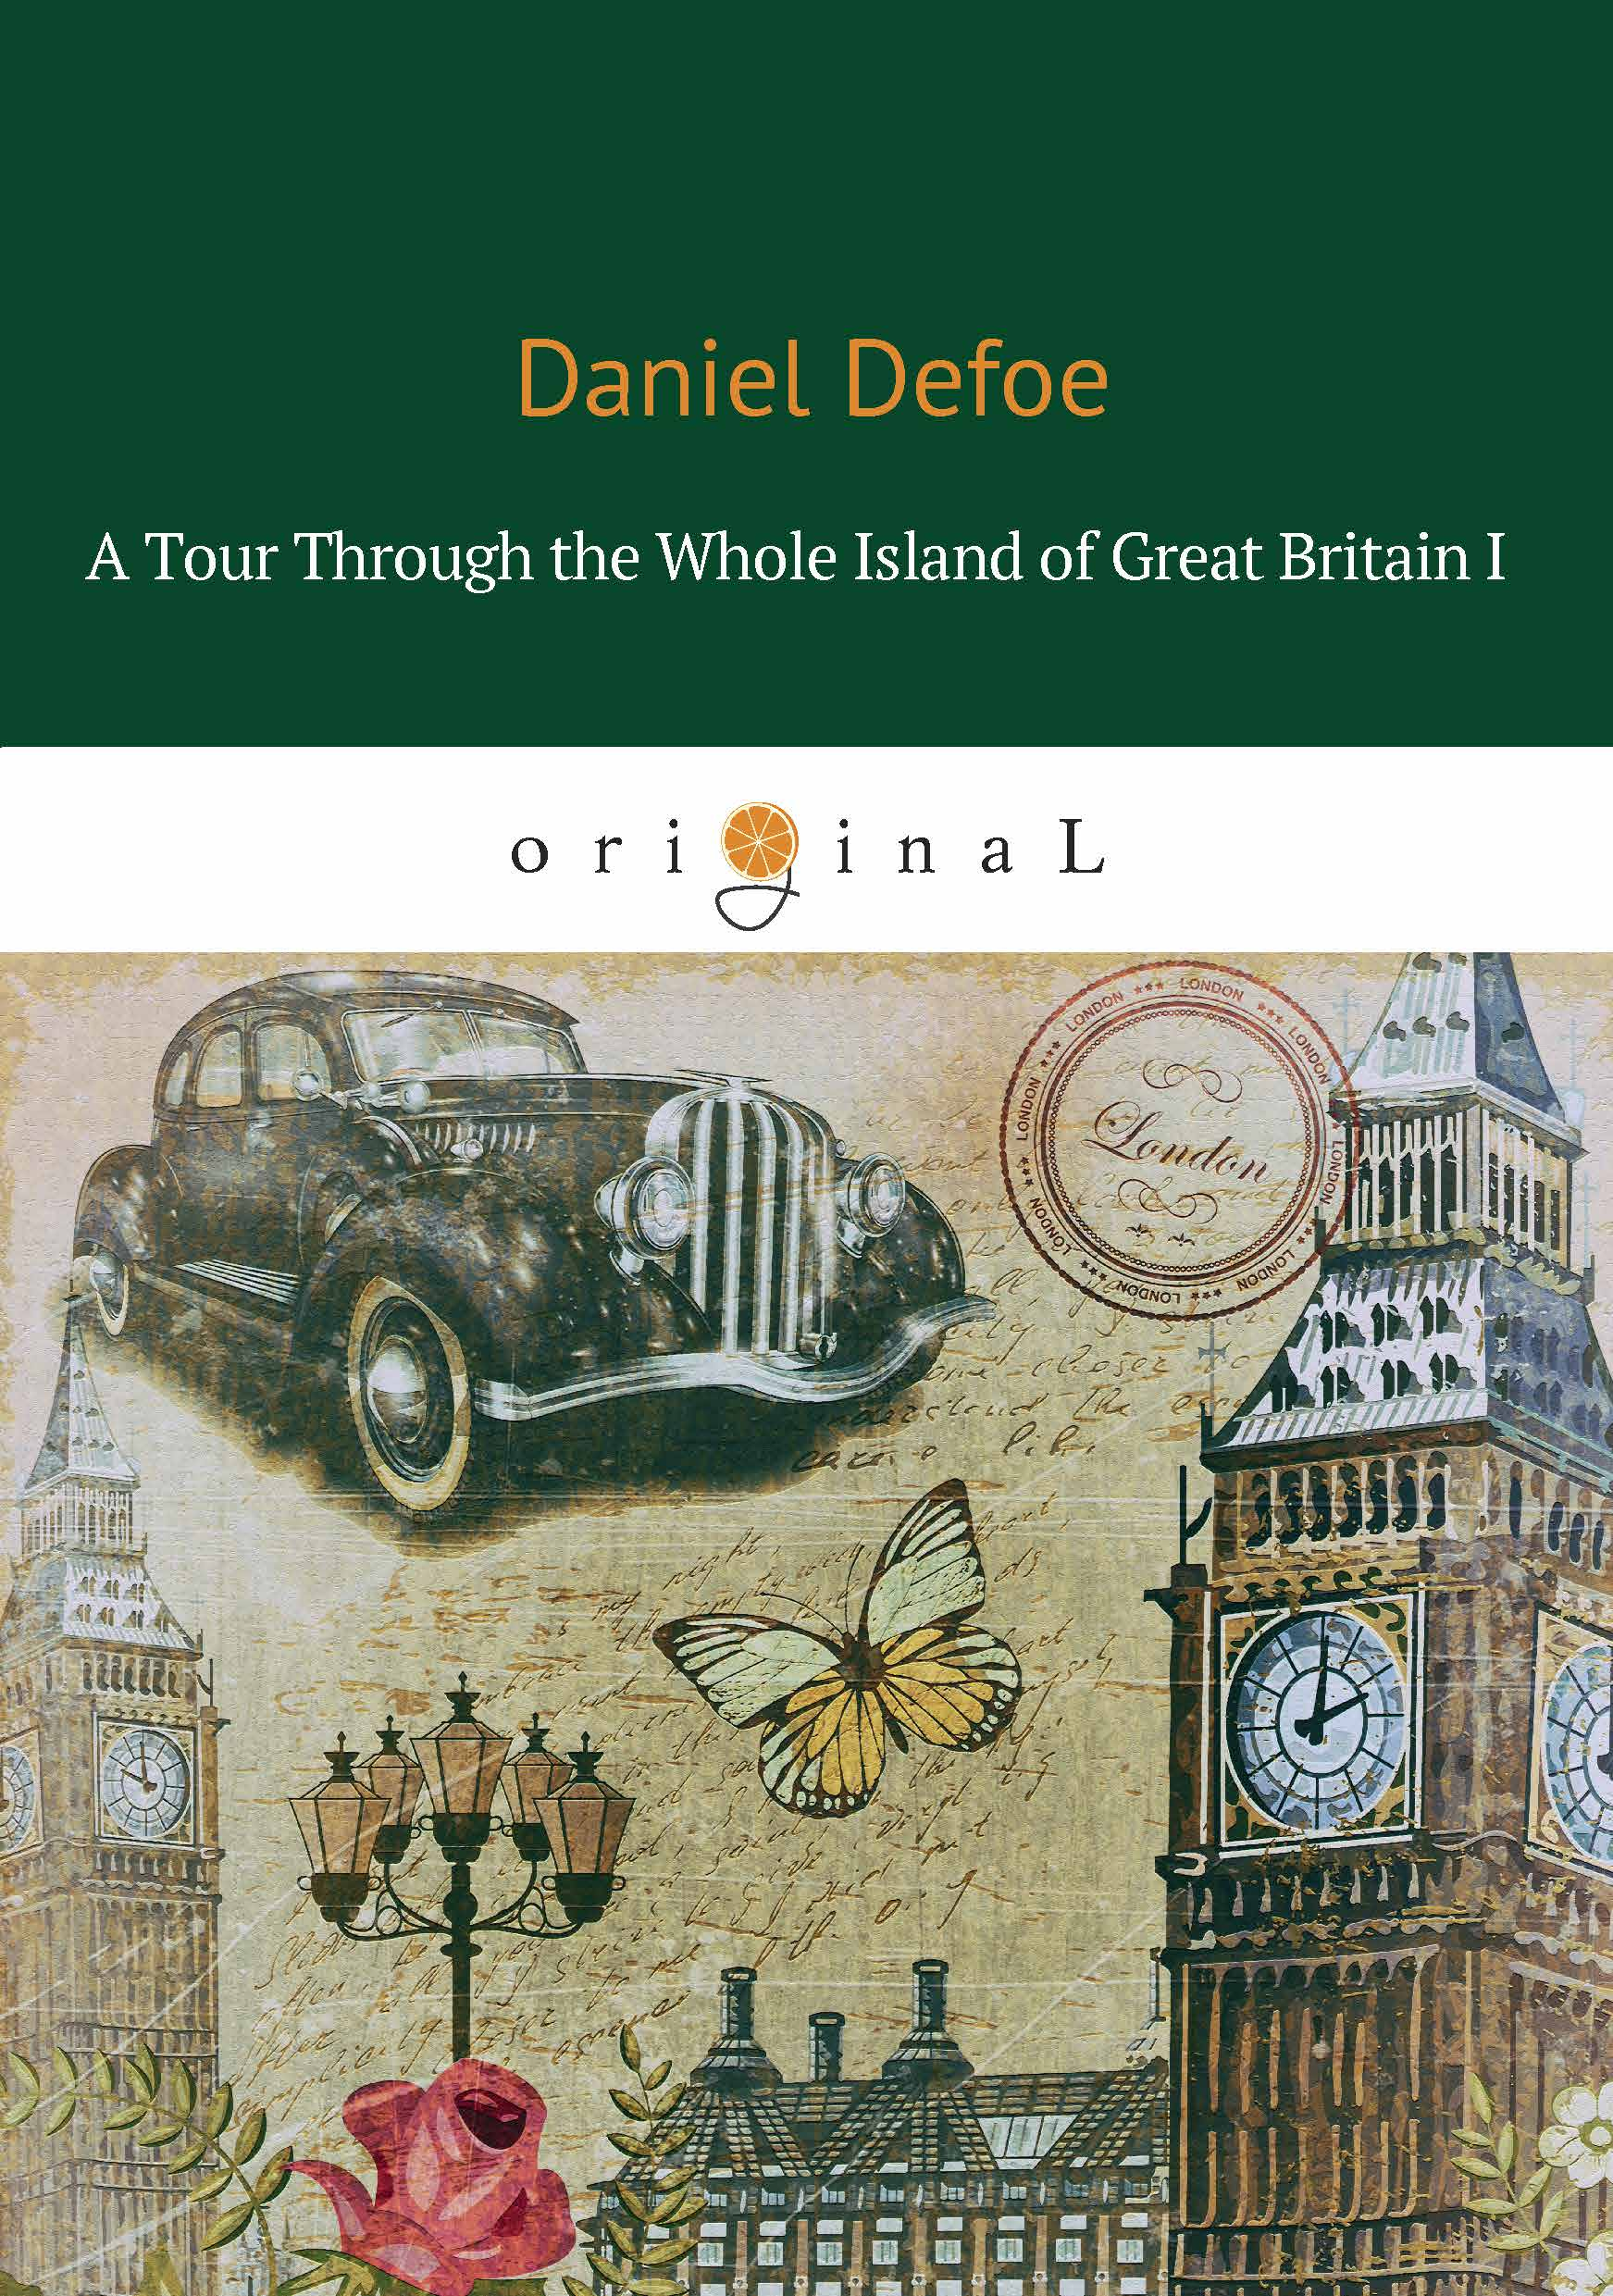 Daniel Defoe A Tour Through the Whole Island of Great Britain I даниэль дефо a tour through the whole island of great britain iii